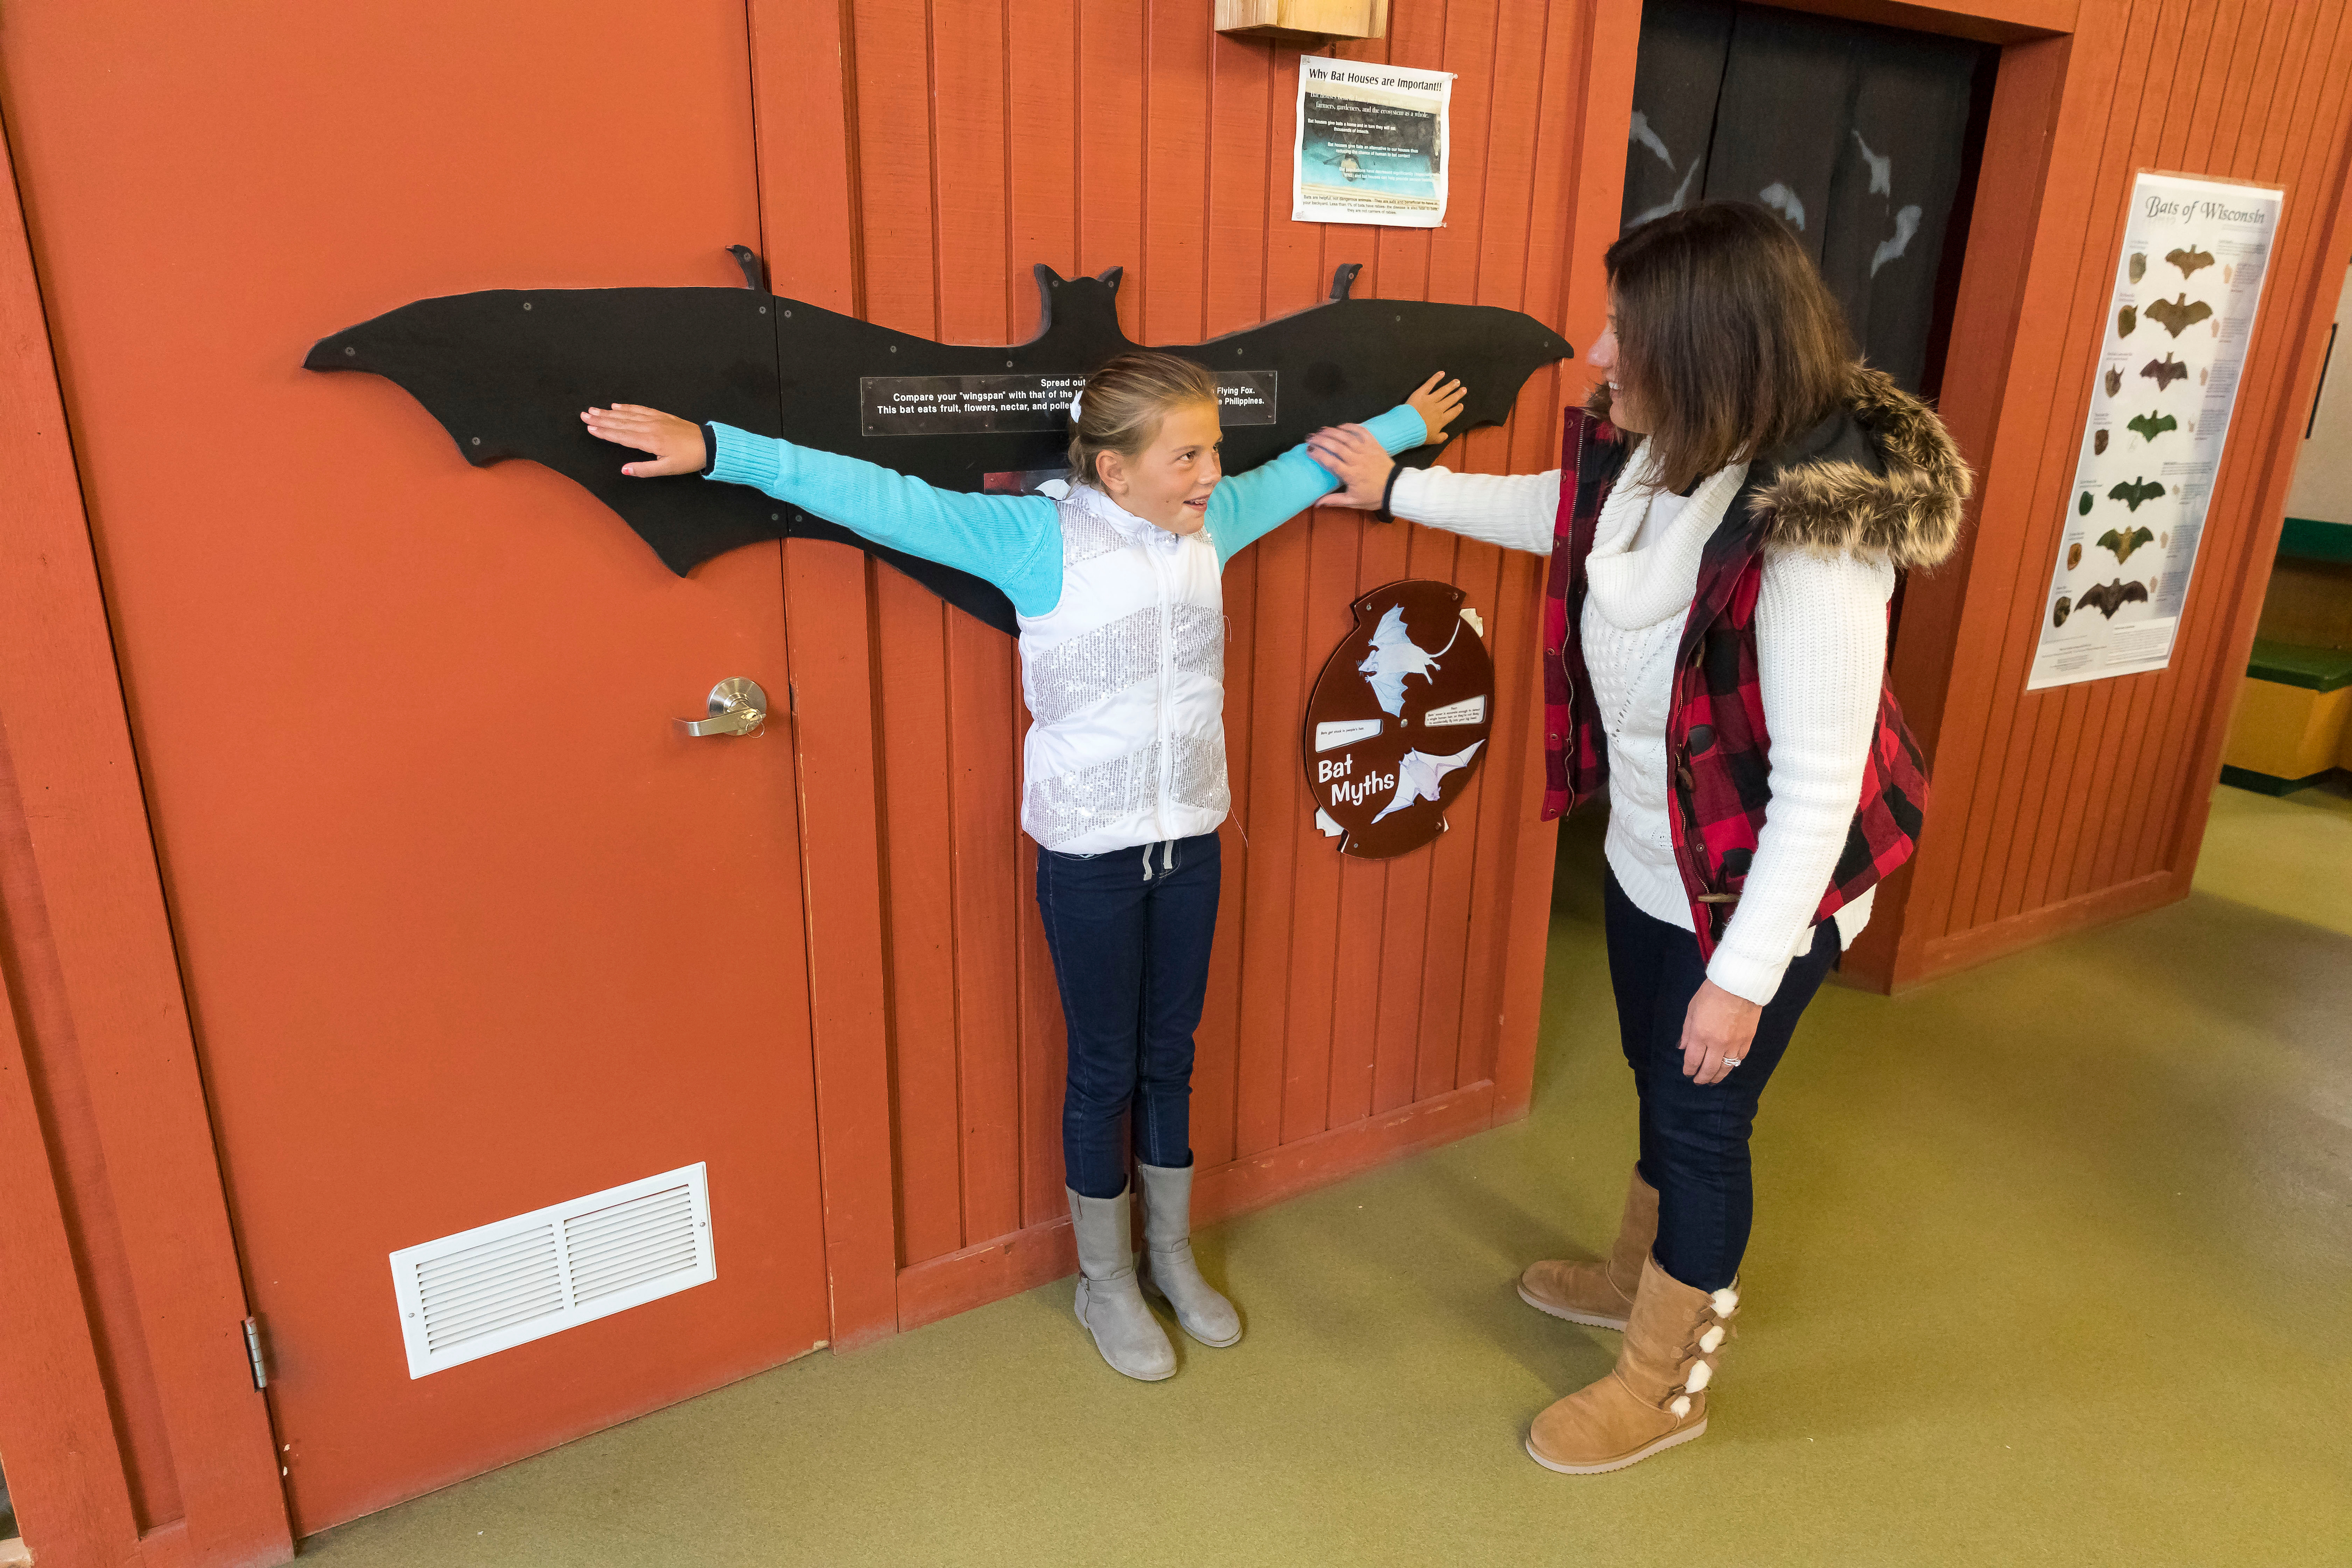 2 people looking at bat barn display in Ledge View Nature Center